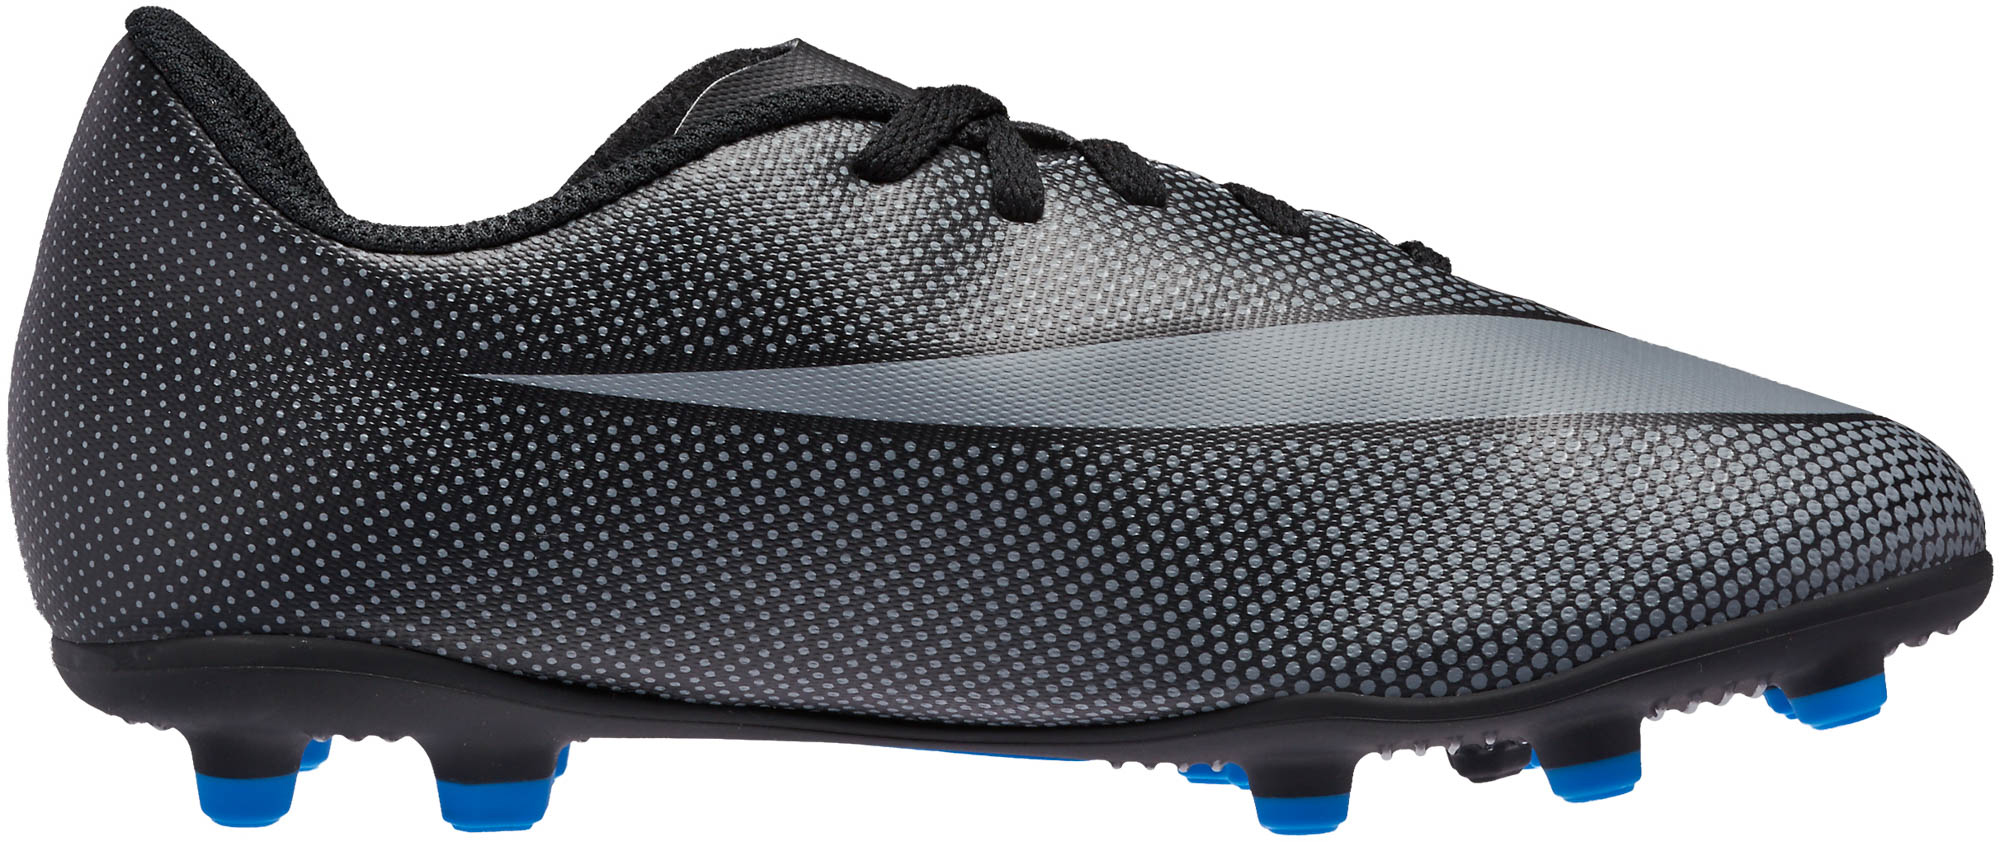 855431f9e89 Nike Kids Bravata II FG - Youth Bravata Soccer Shoes